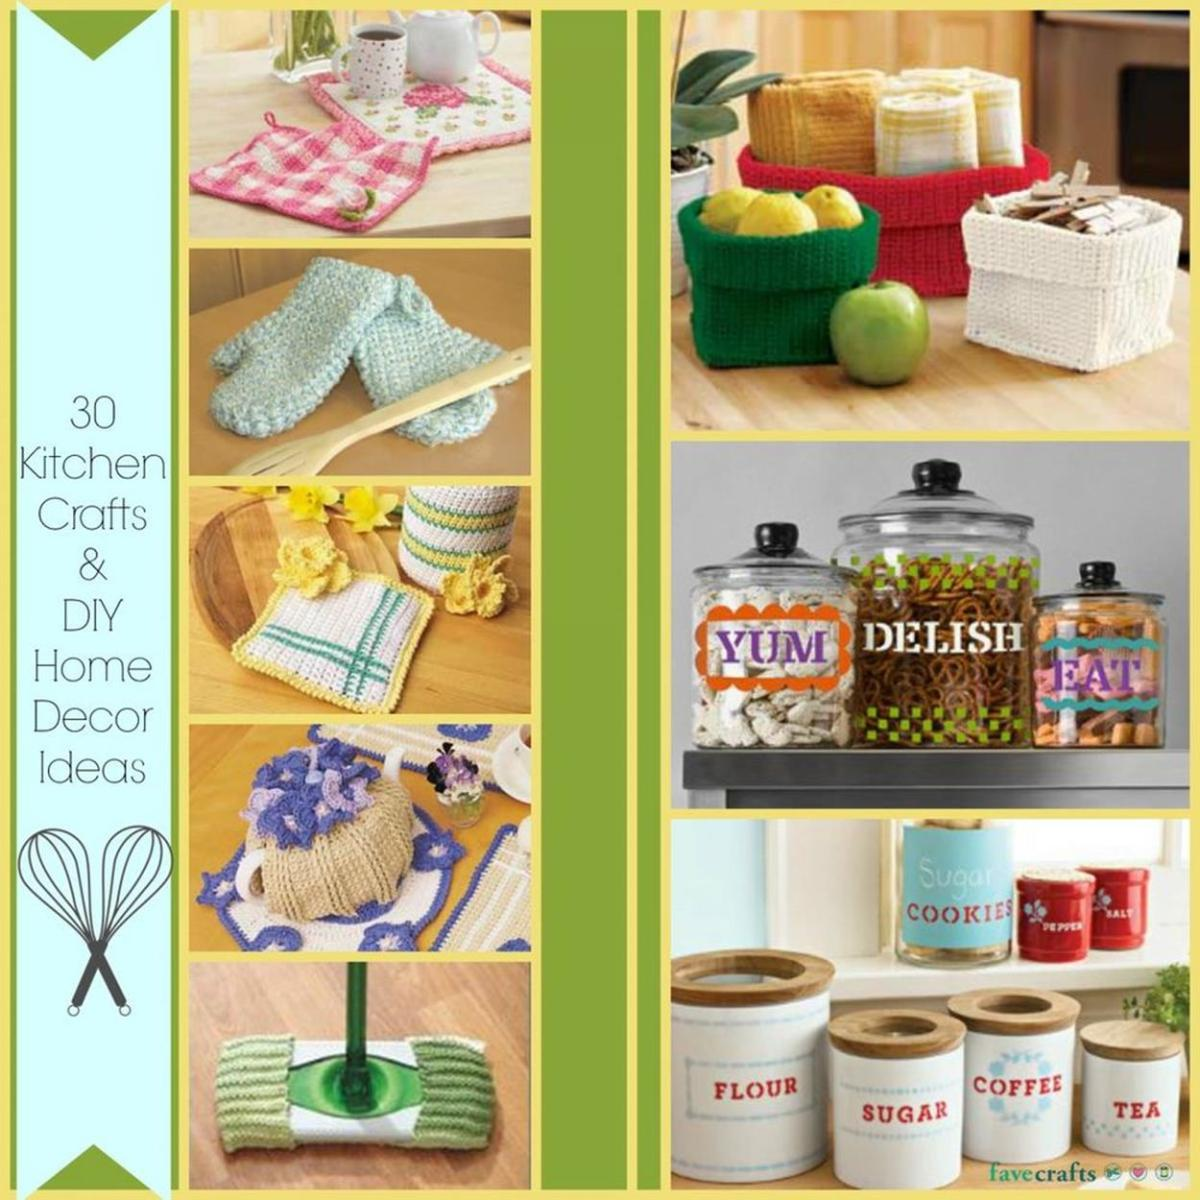 Creative Homemade Crafts for House Decorations Ideas 11